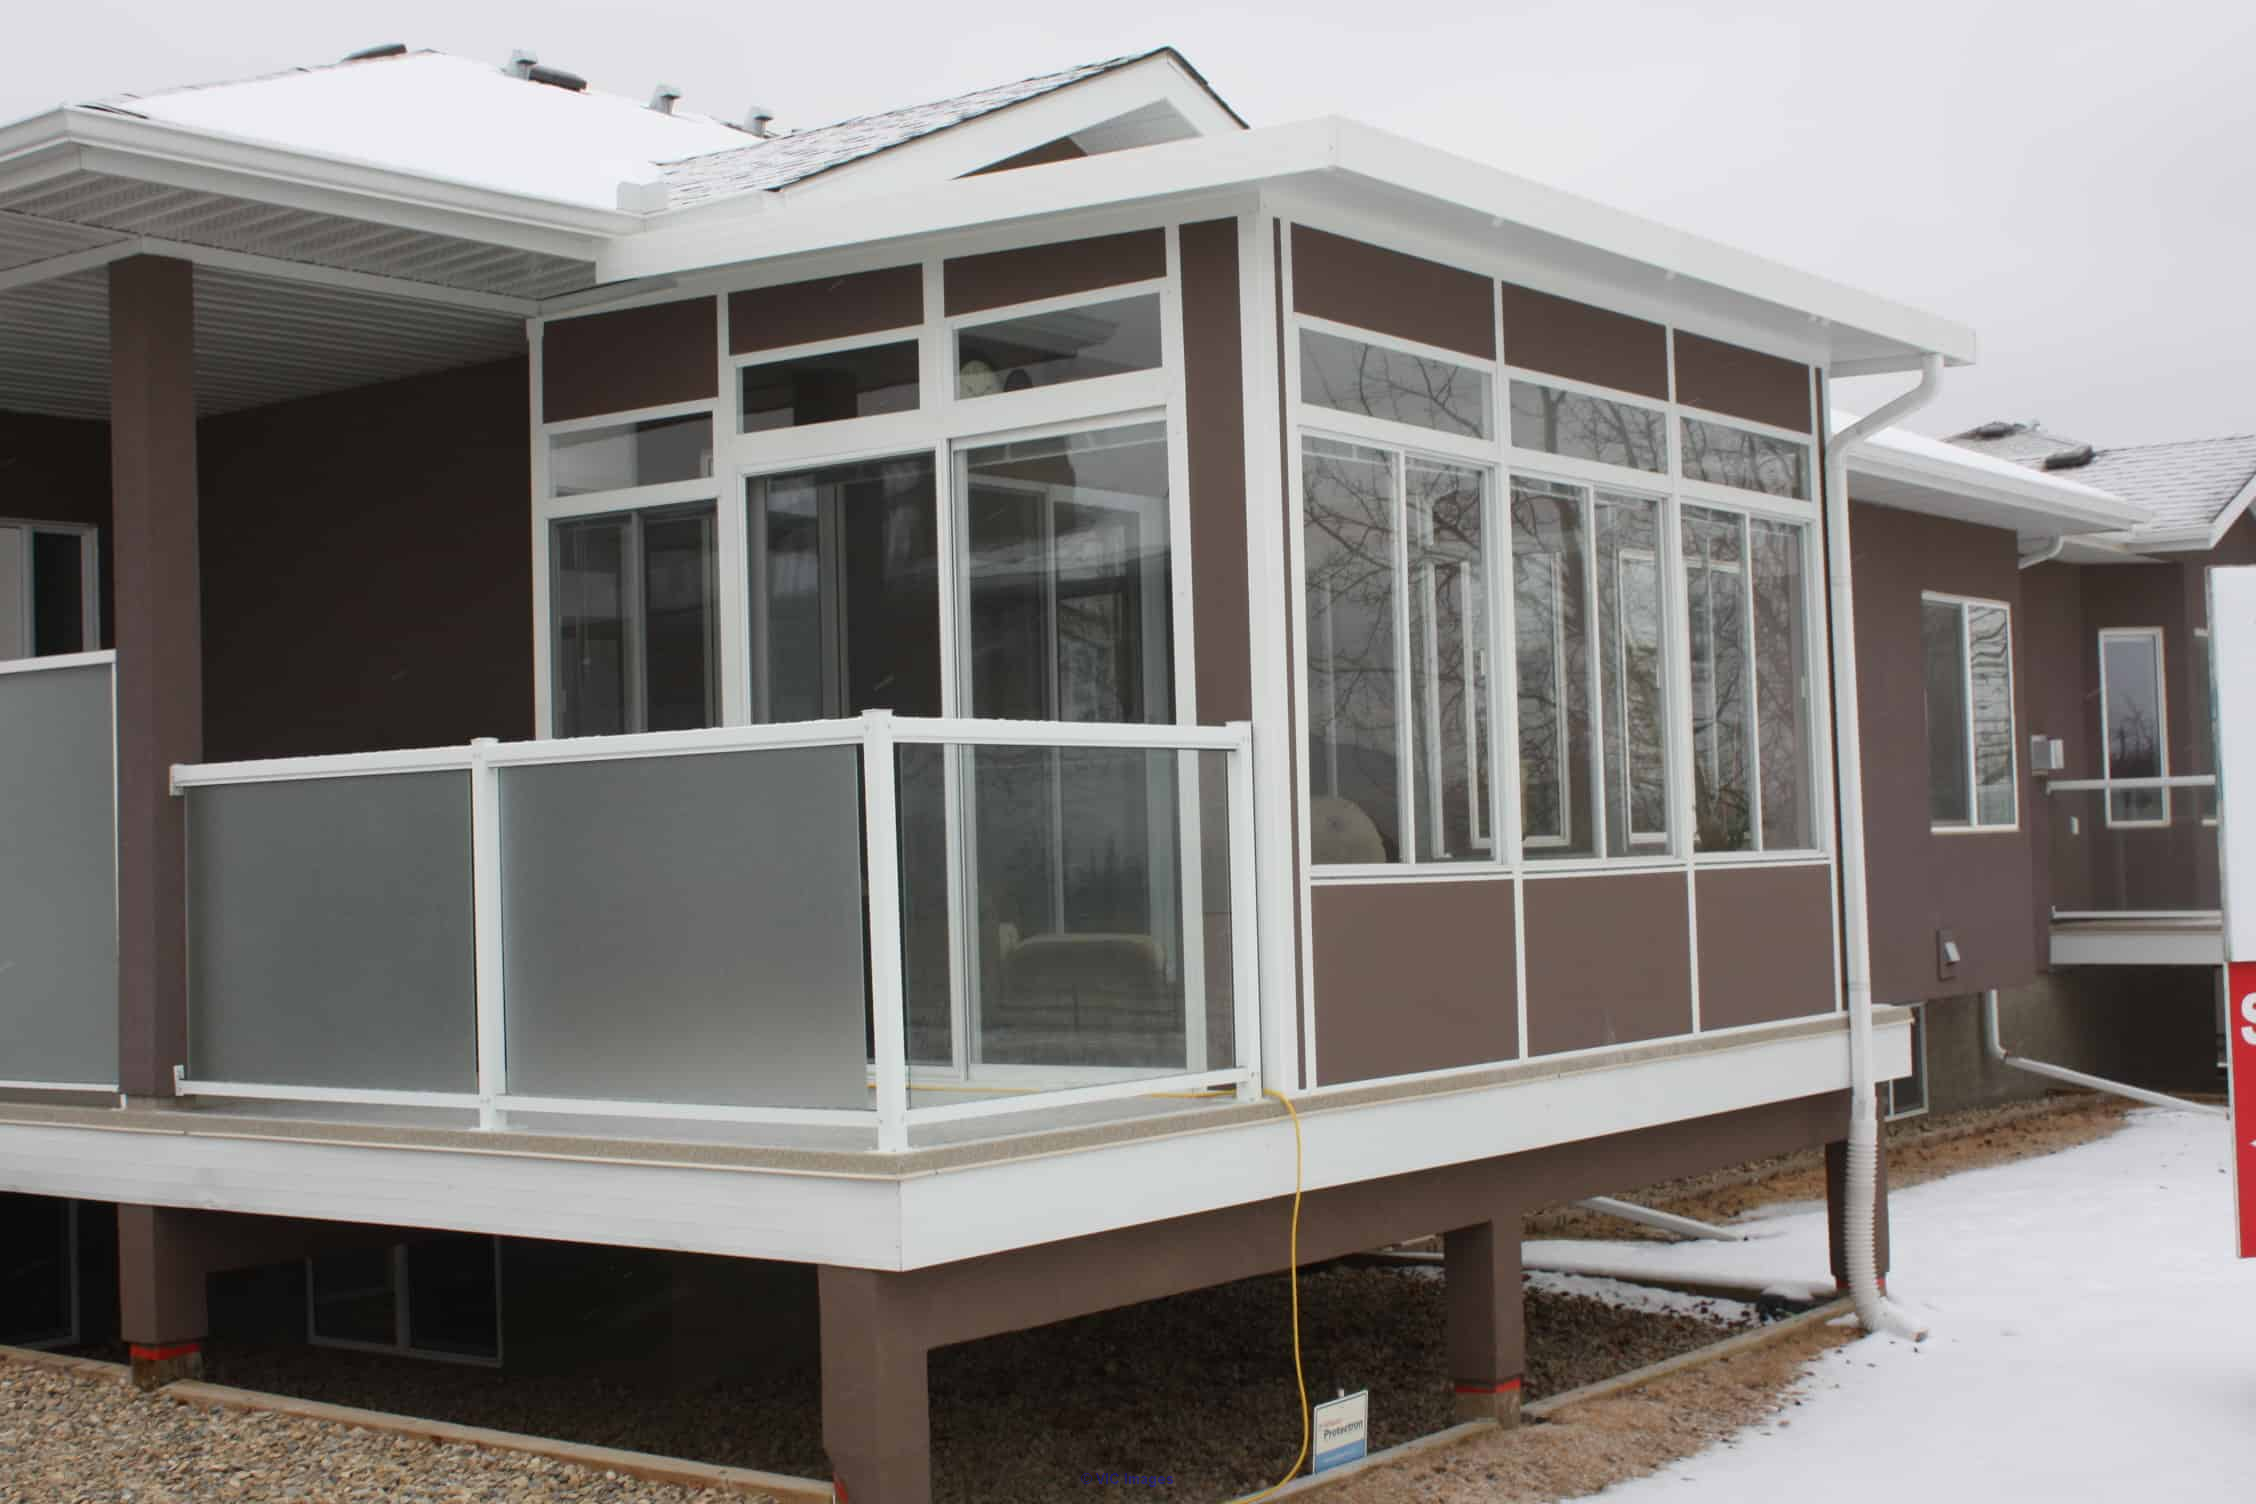 Patio Sunroom Kits Calgary, Alberta Calgary, Alberta, Canada Classifieds